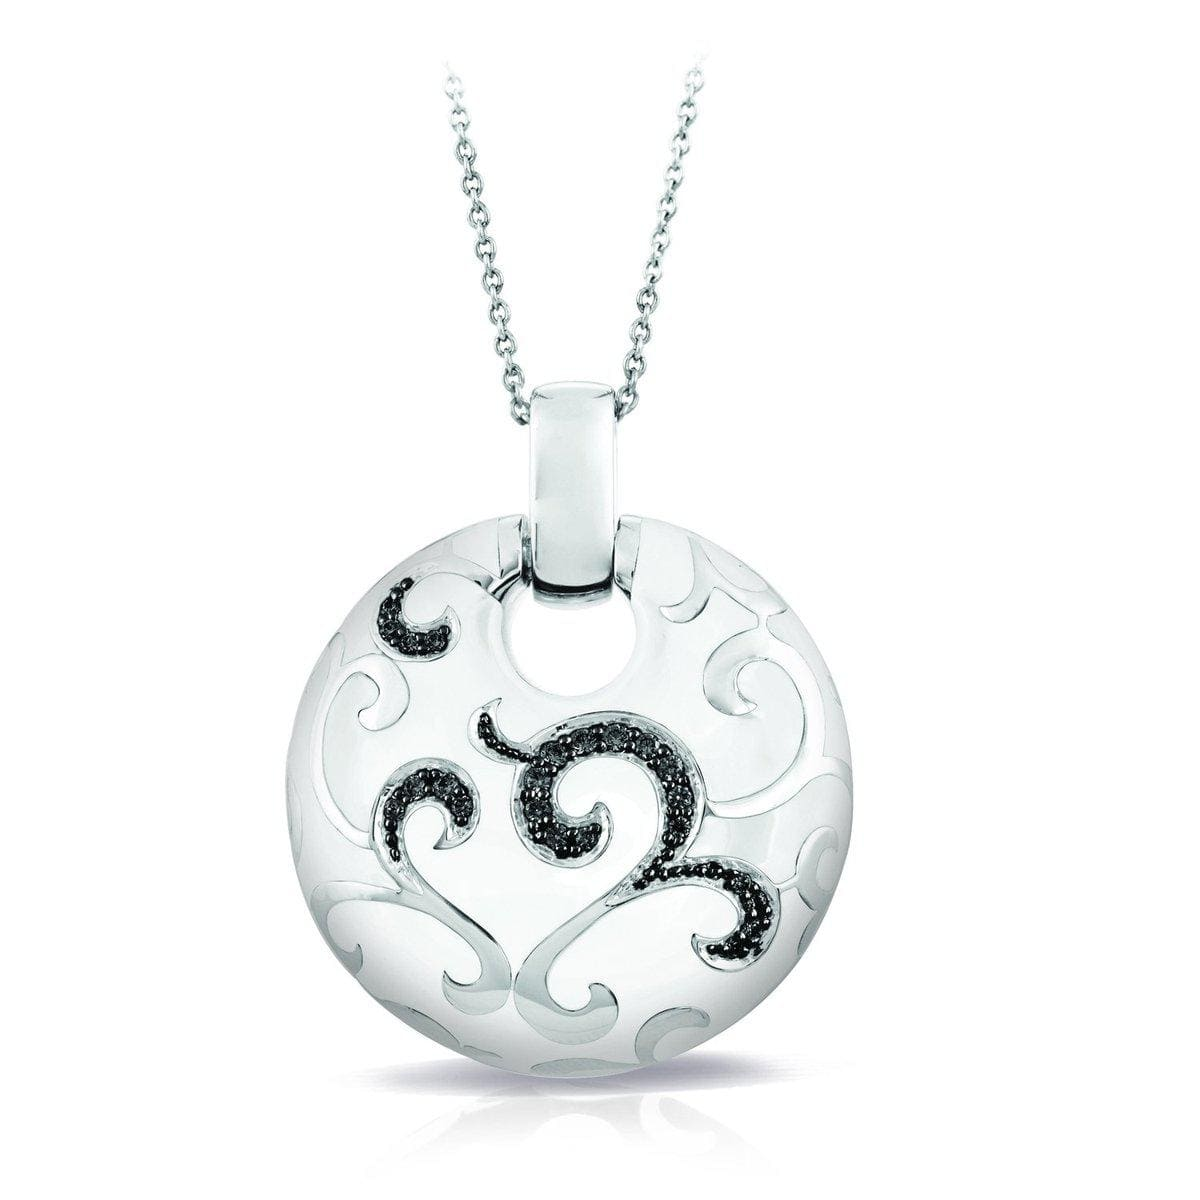 Royale White and Black Pendant-Belle Etoile-Renee Taylor Gallery